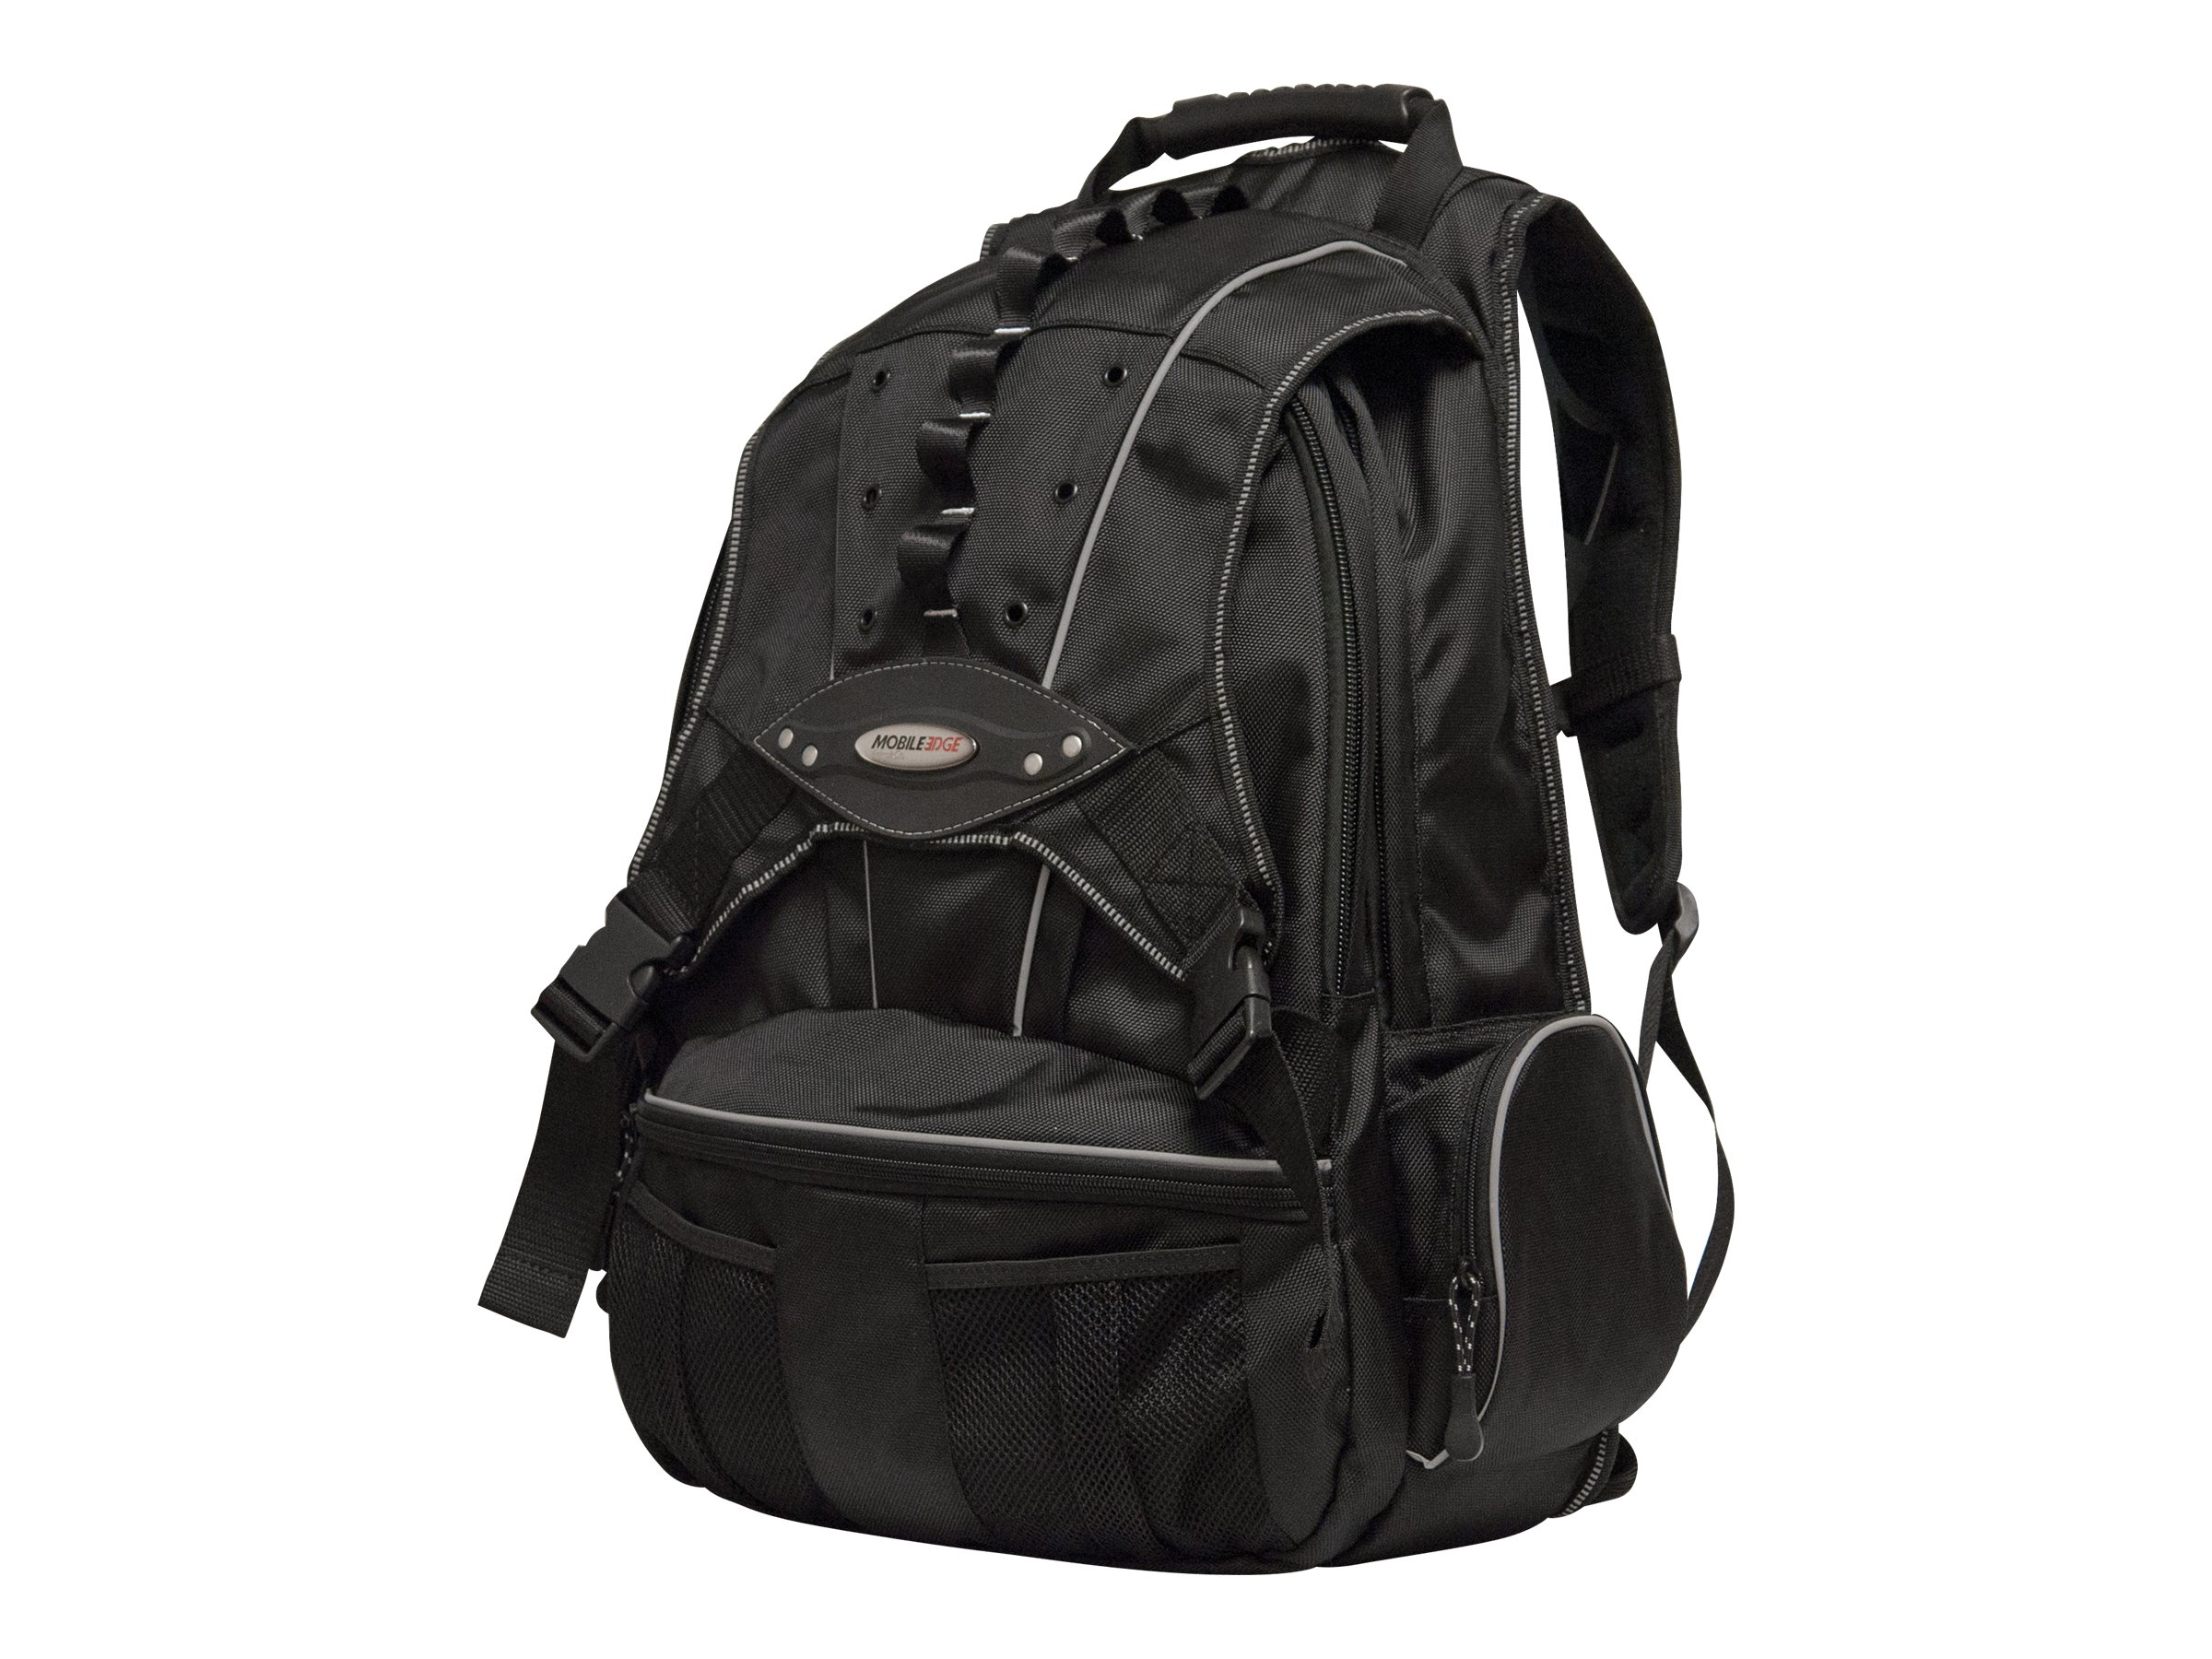 Mobile Edge Premium Backpack, Nylon, Charcoal Black